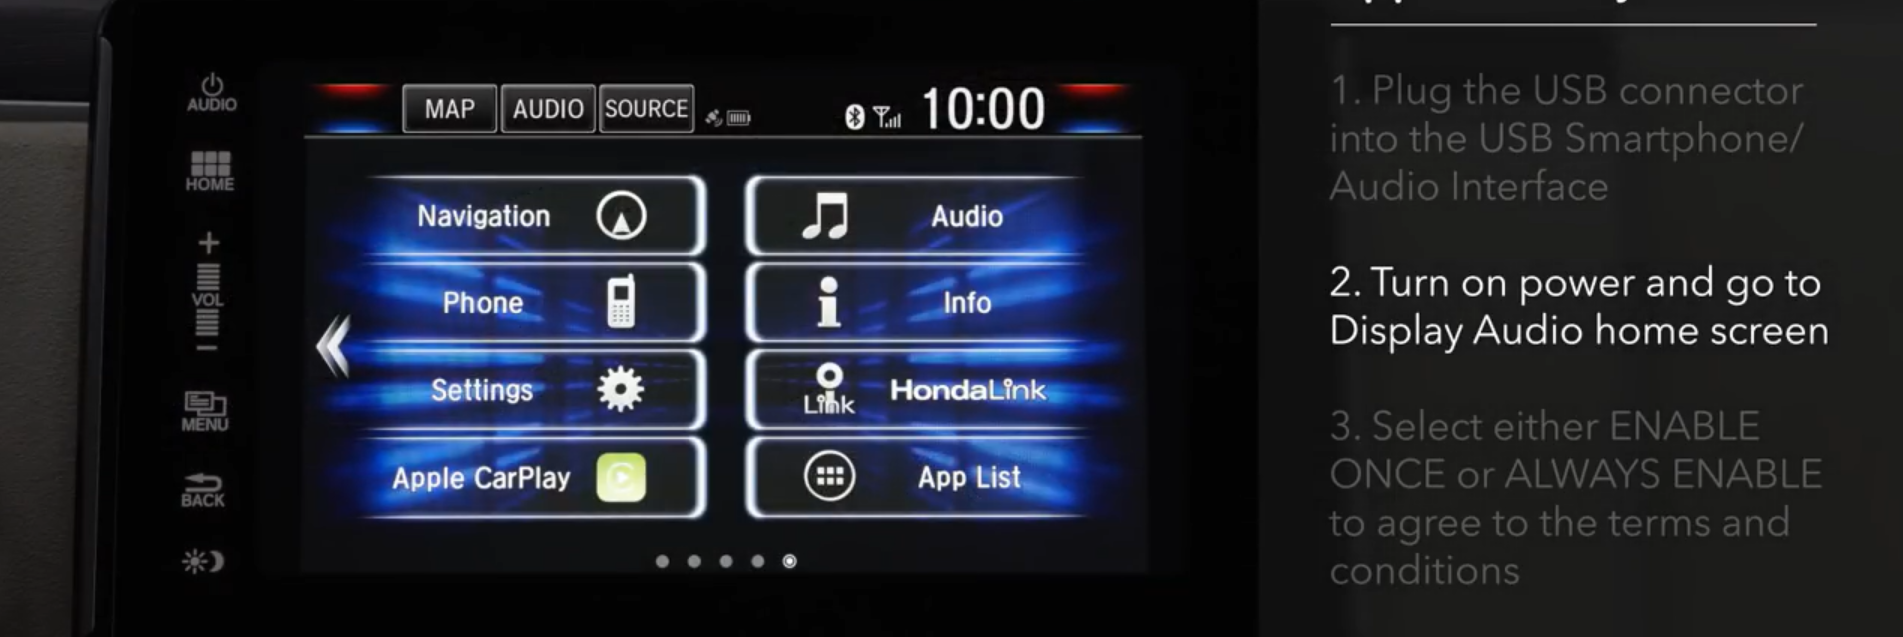 Apple CarPlay connection steps